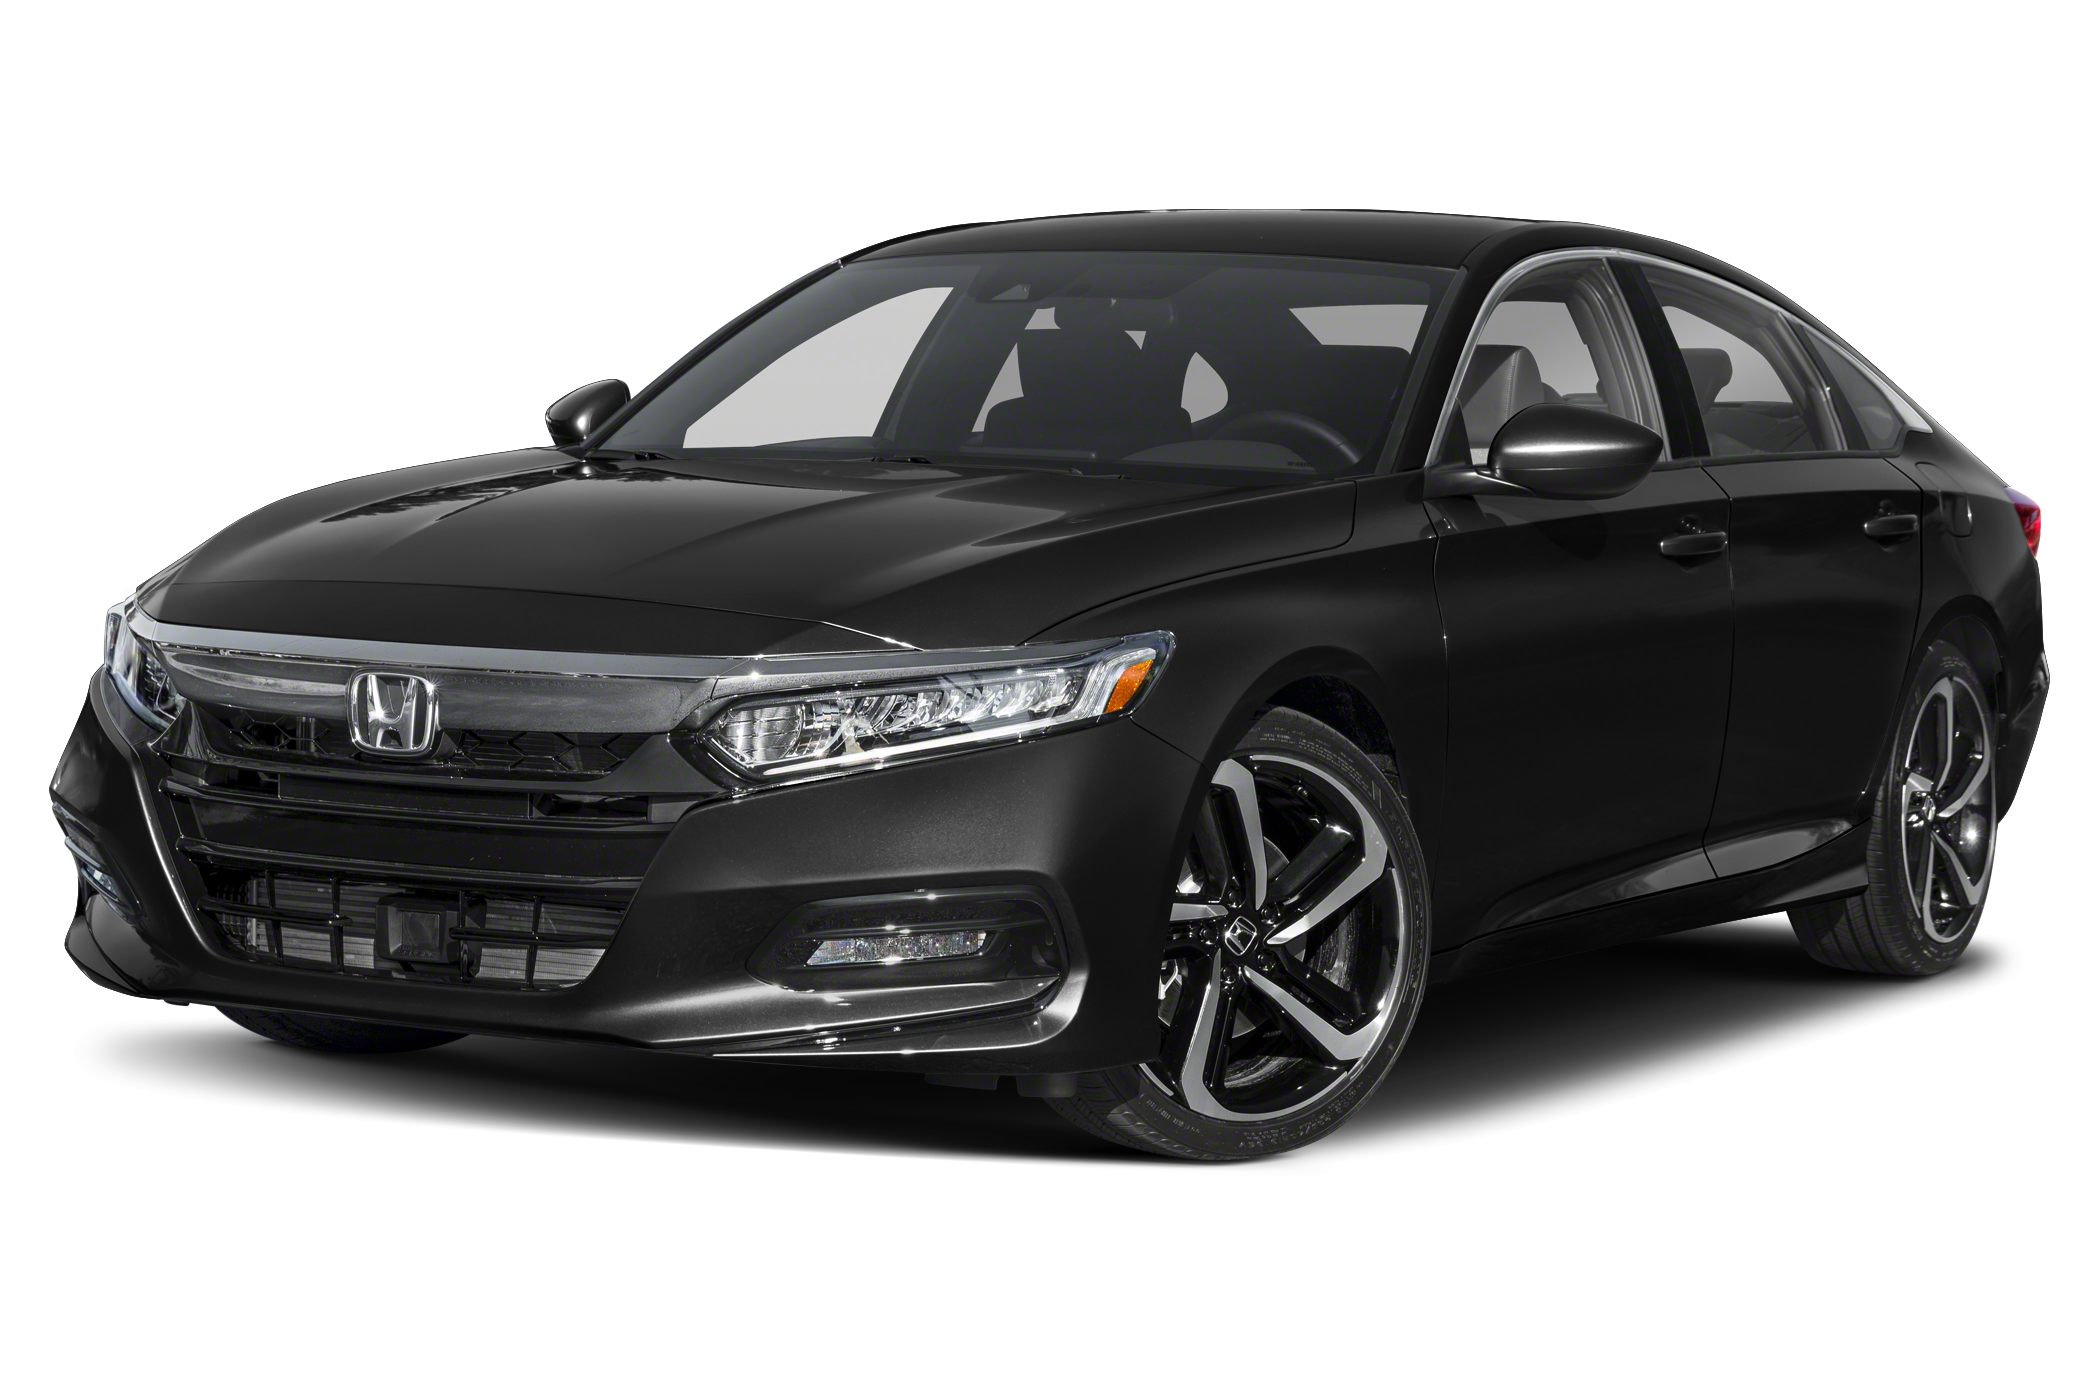 2020 Honda Accord Sport 1.5T 4dr Sedan